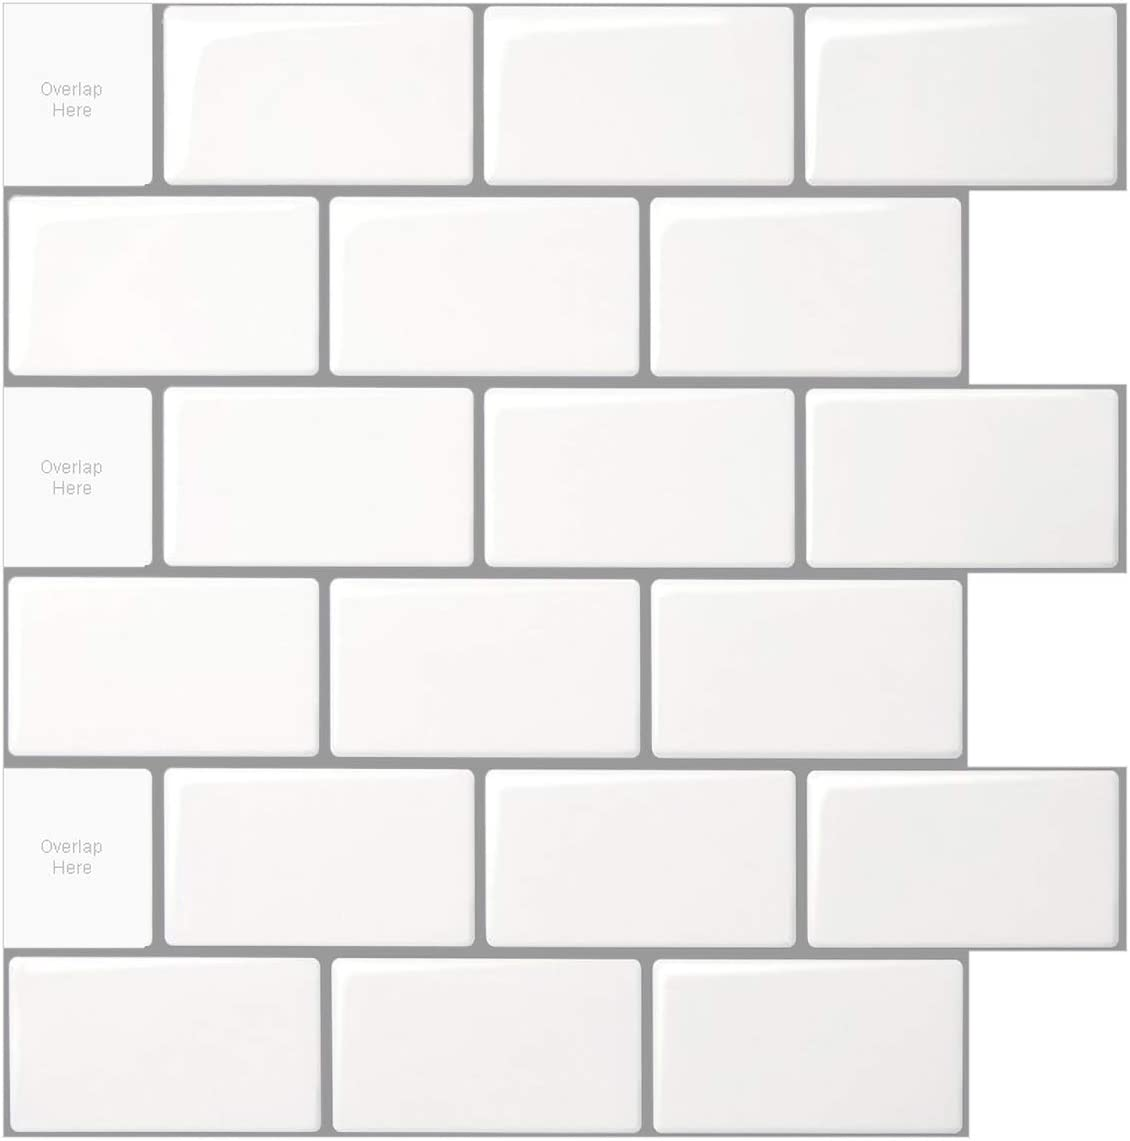 Longking 10 Sheet Peel And Stick Tile For Kitchen Backsplash 12x12 Inches White Subway Tile With Grey Grout Home Kitchen